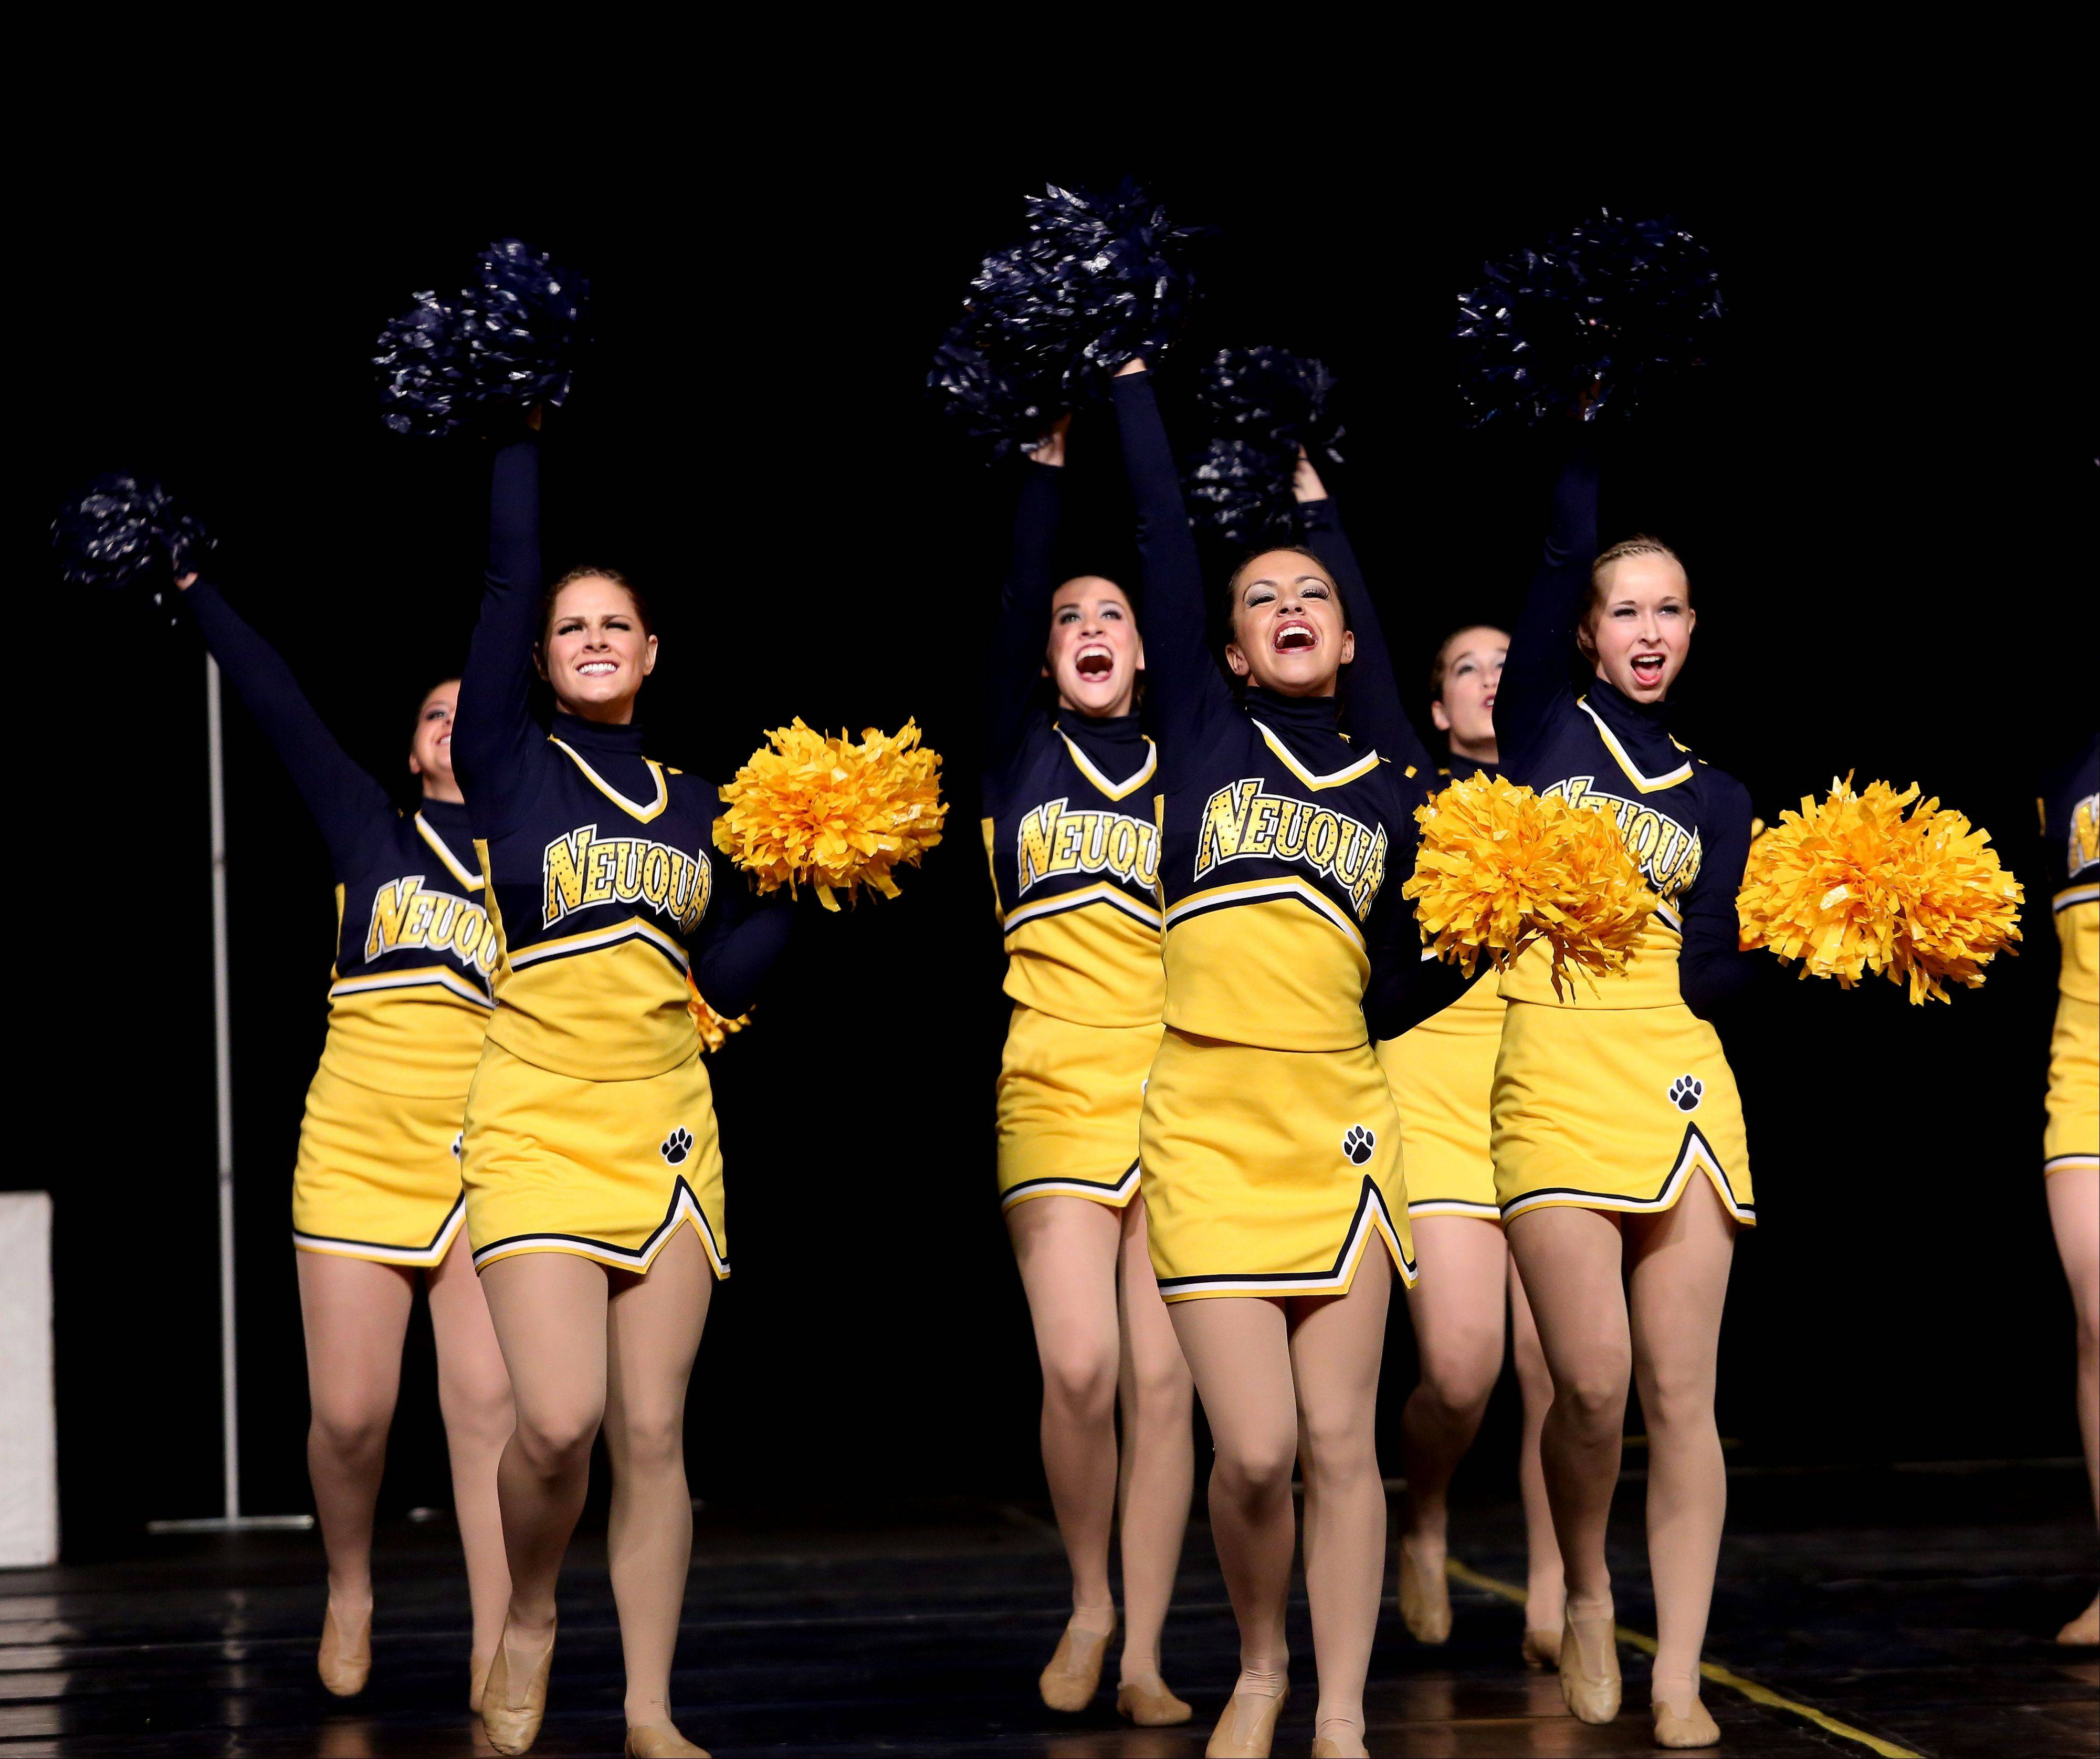 The Neuqua Valley dance team perform their routine in the 3A division of the Competitive Dance State Finals on Saturday in Bloomington.